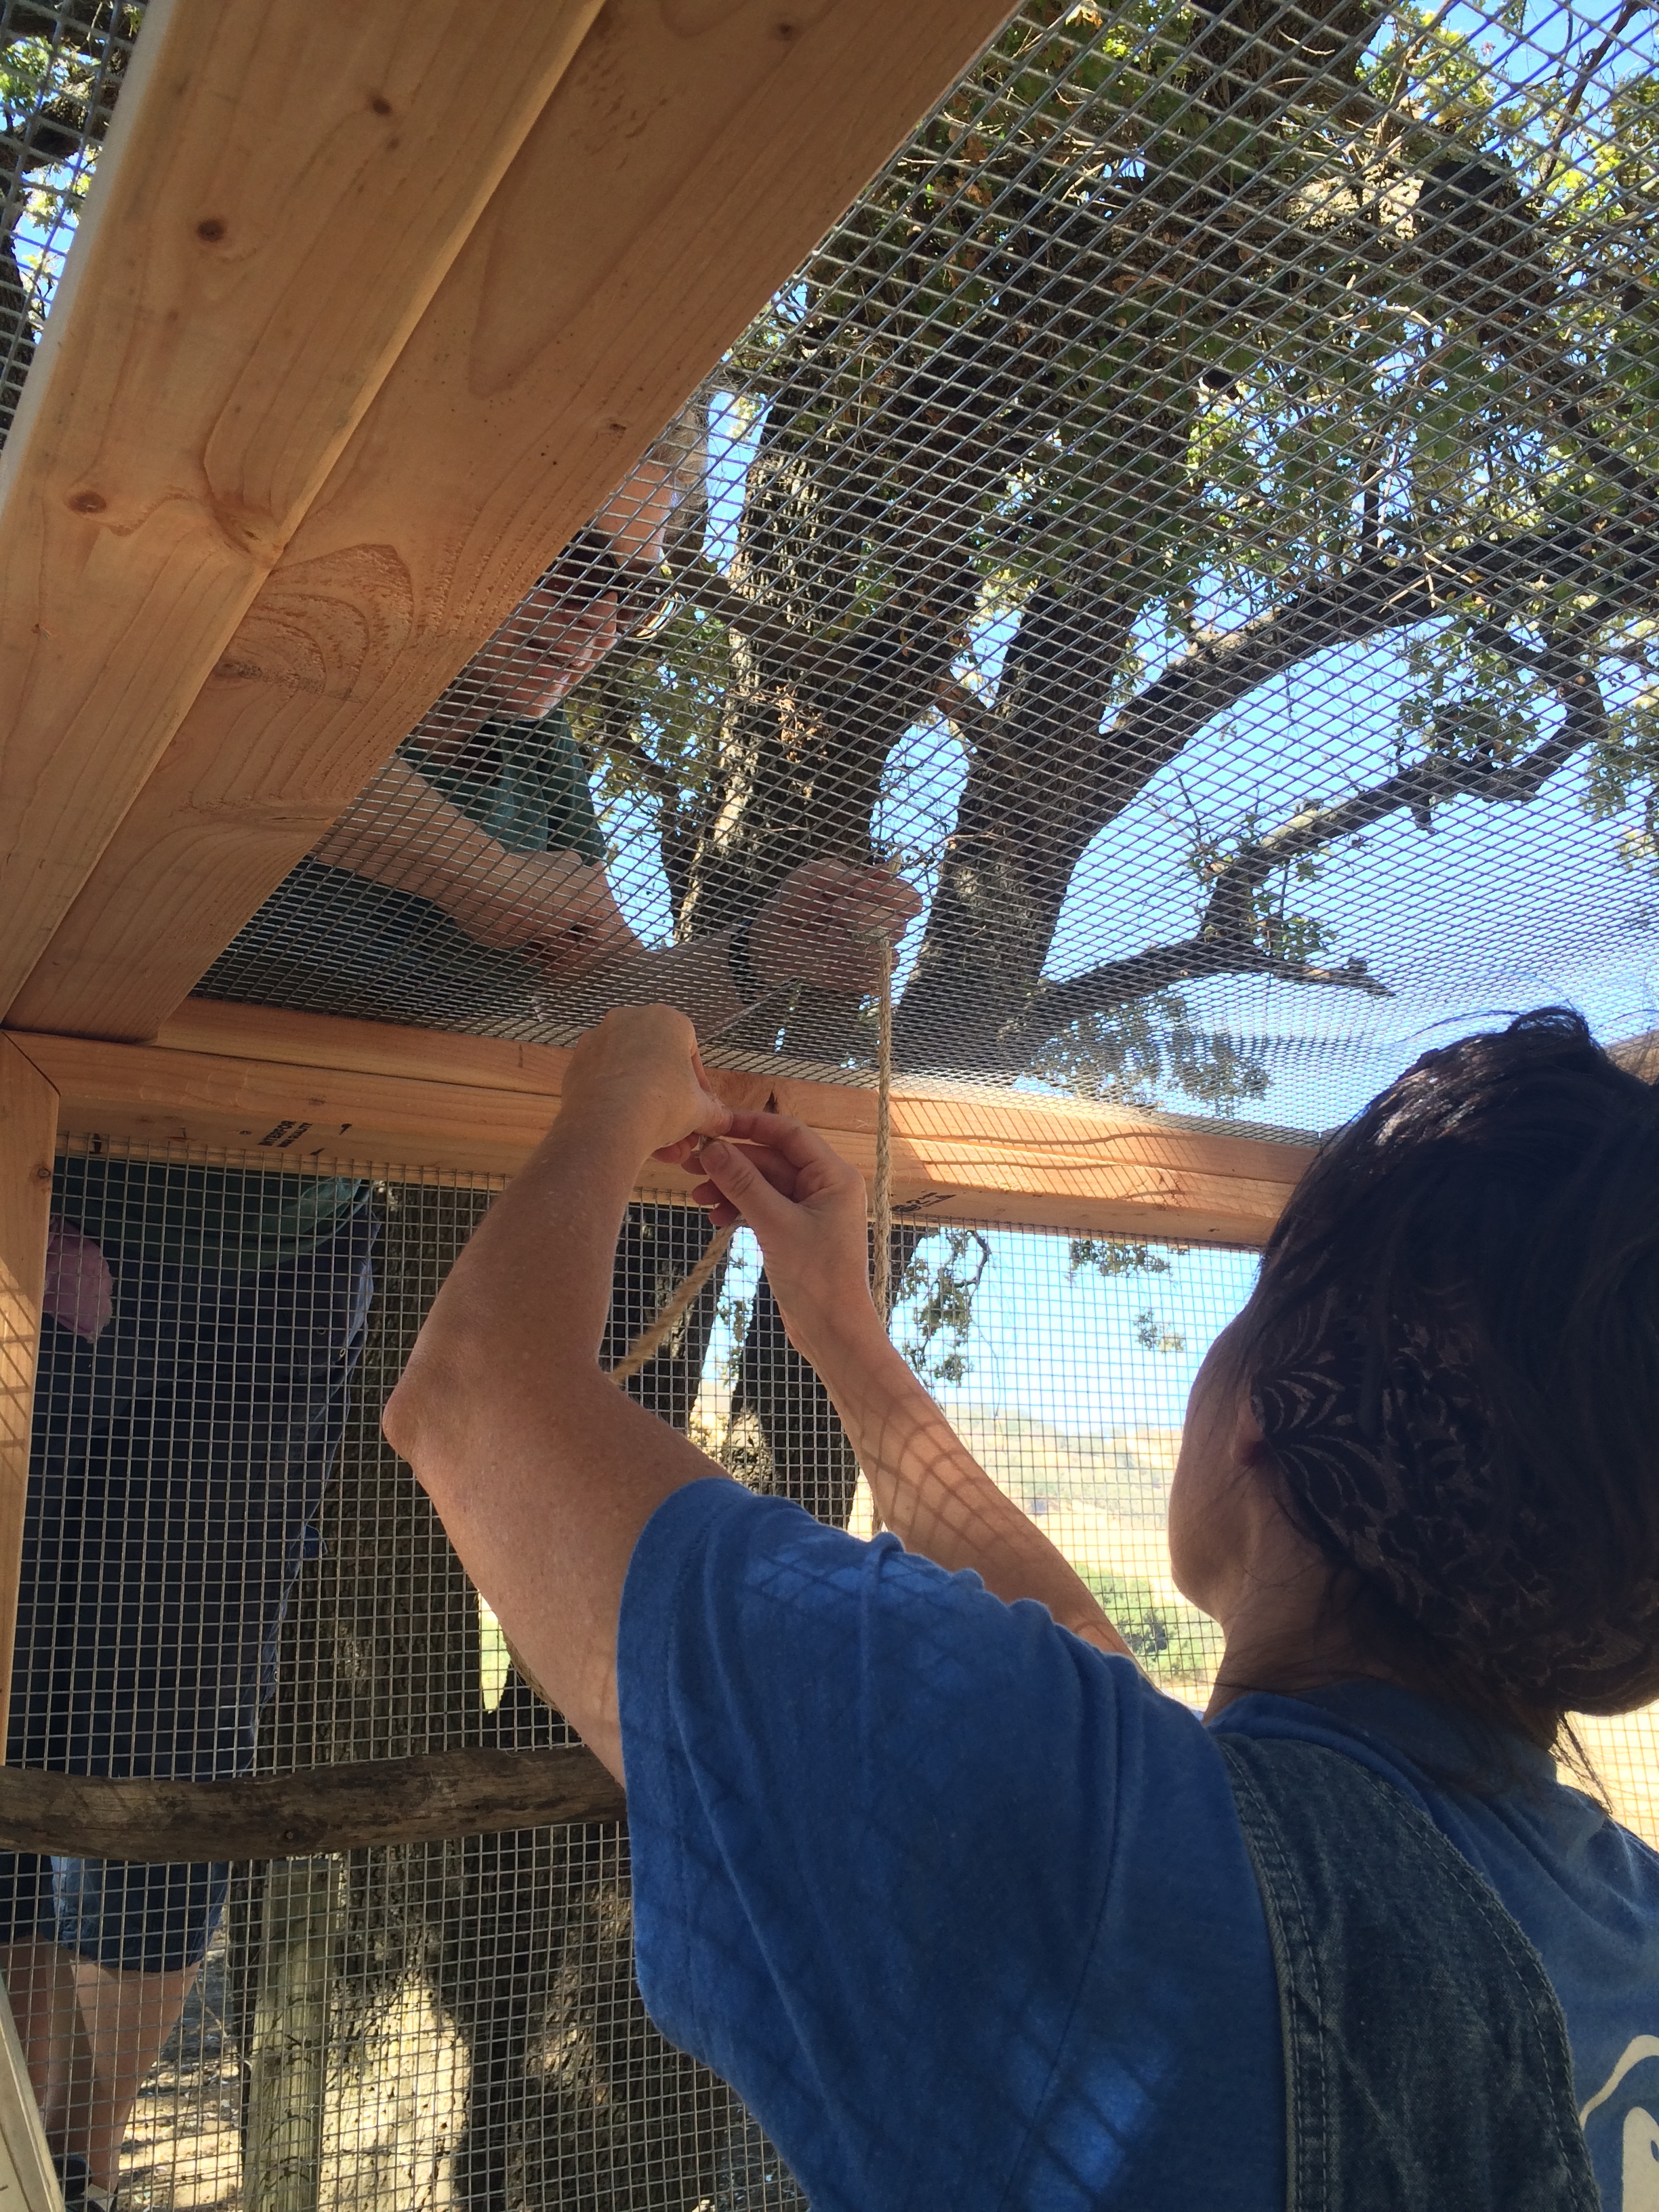 Ellie & Helen added two 'swing' style perches